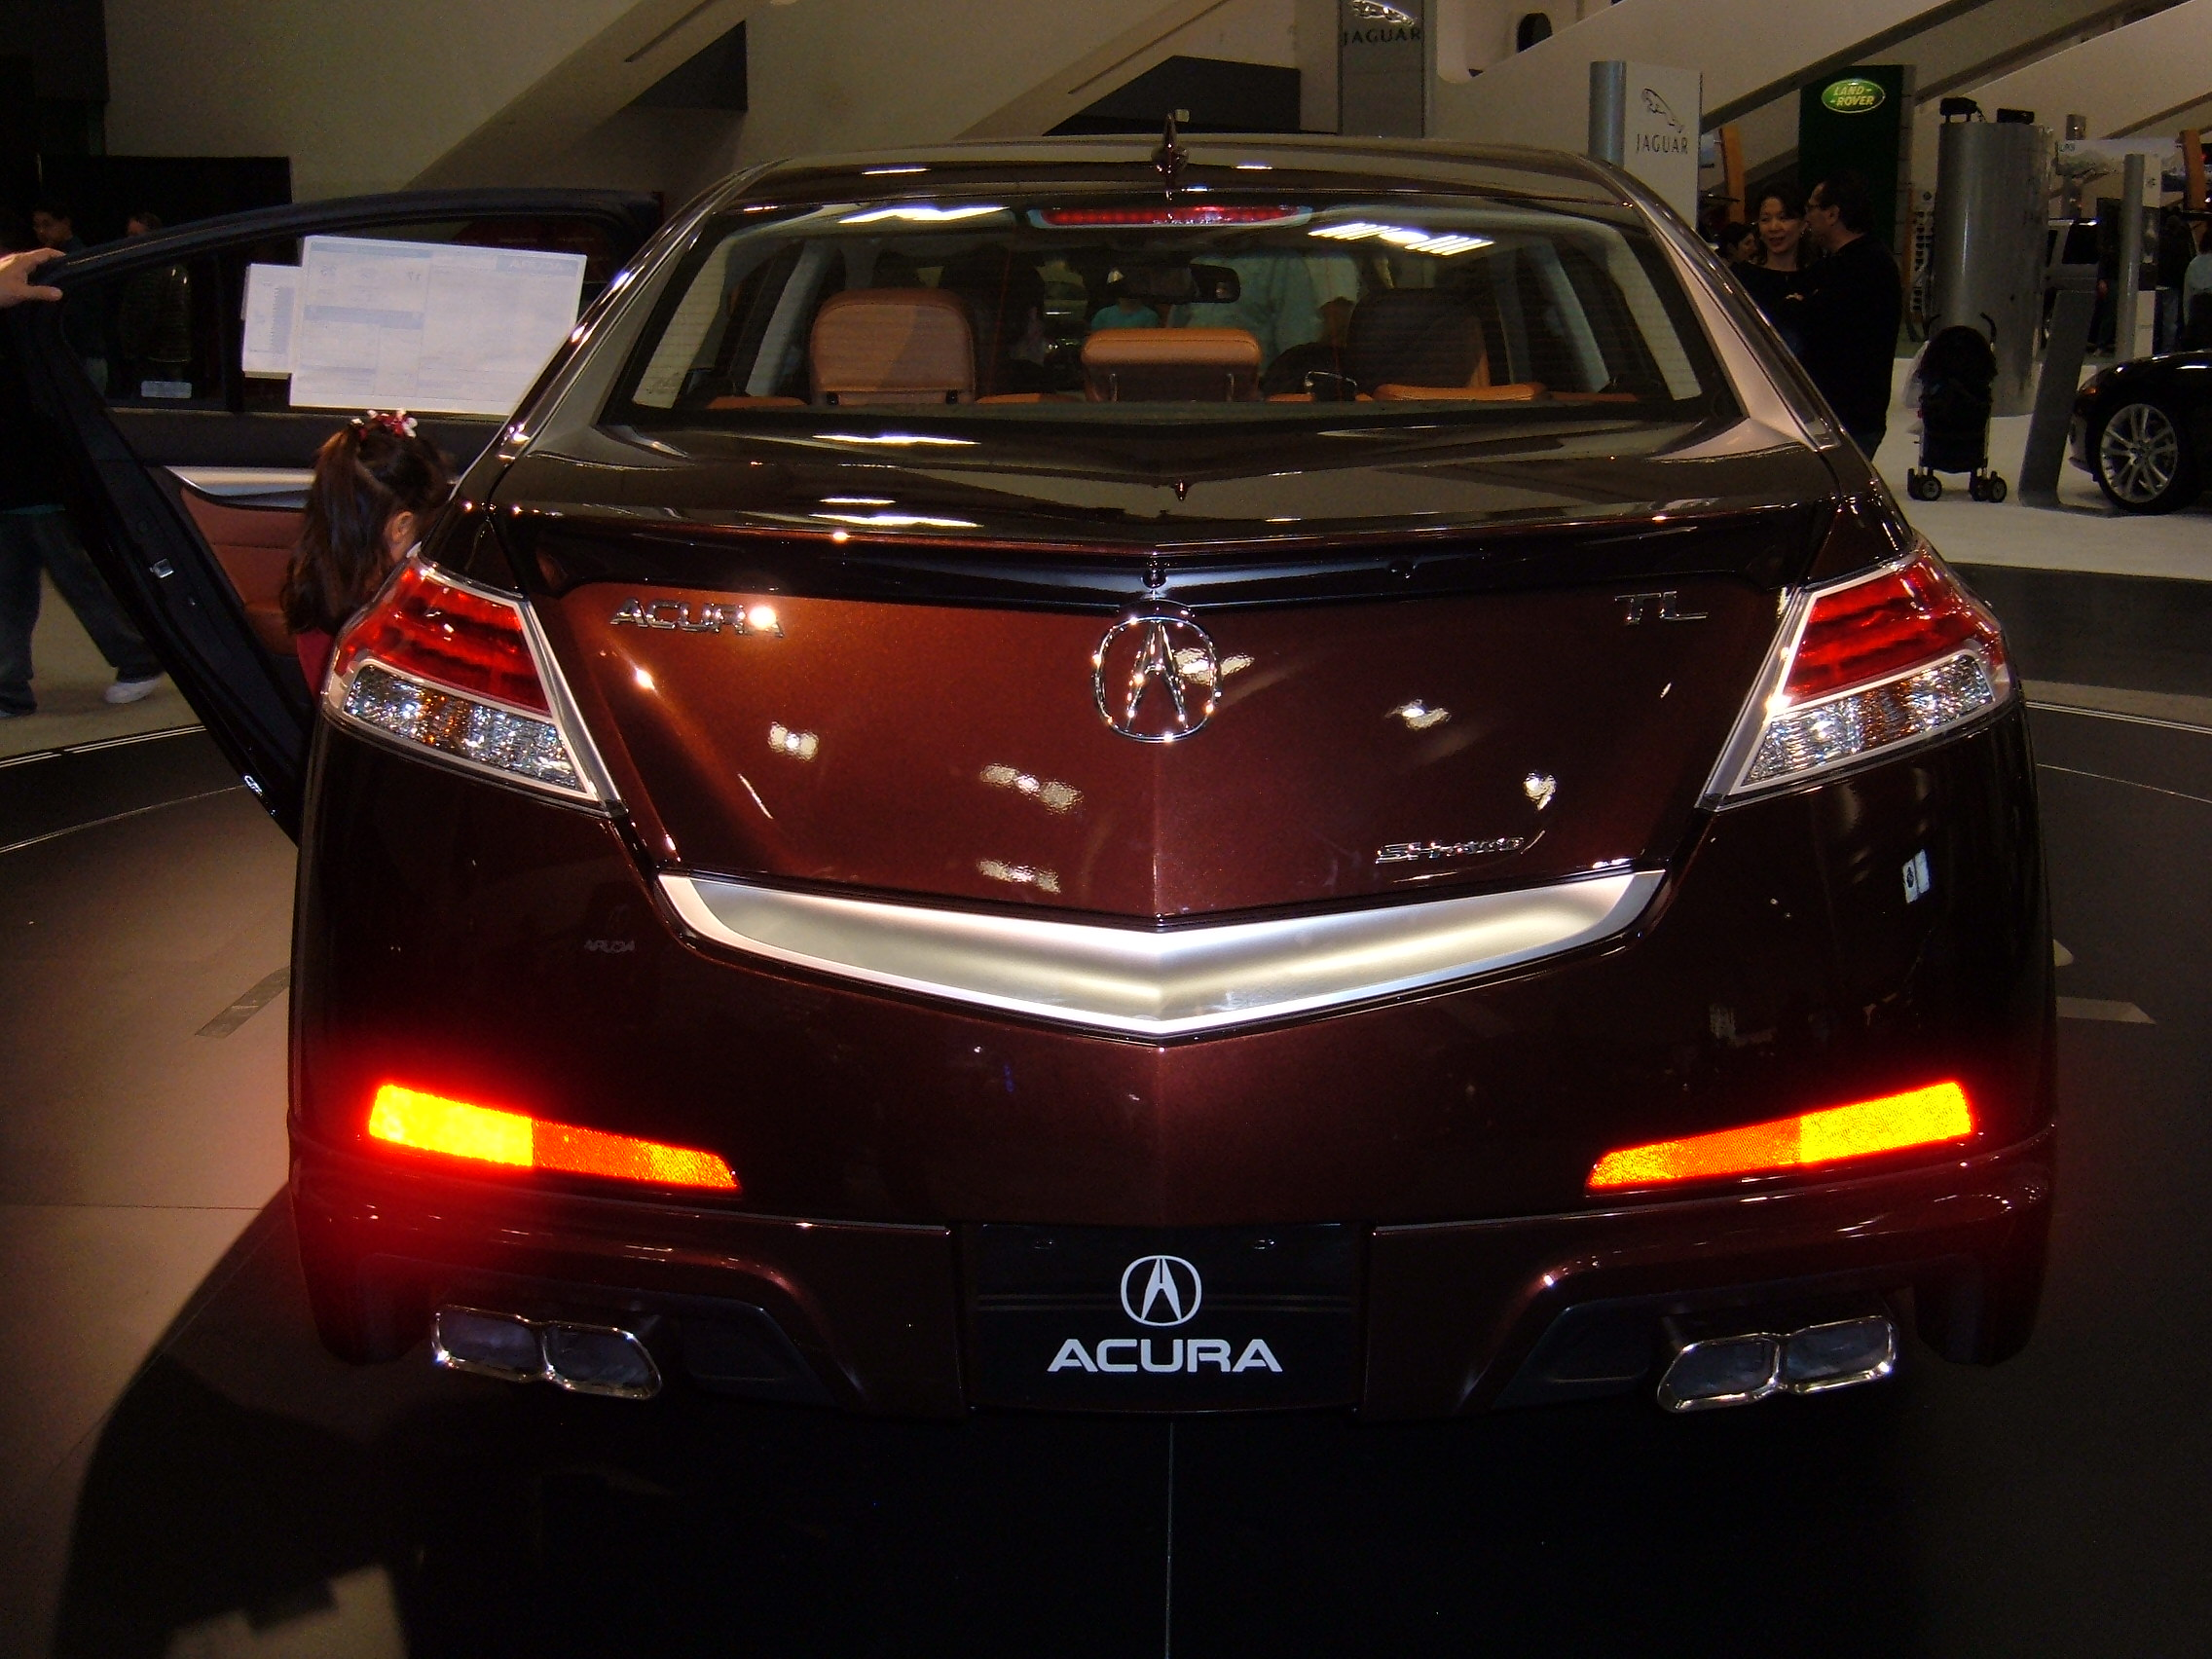 File:2009 maroon Acura TL SH-AWD Tech rear.JPG - Wikipedia, the free ...